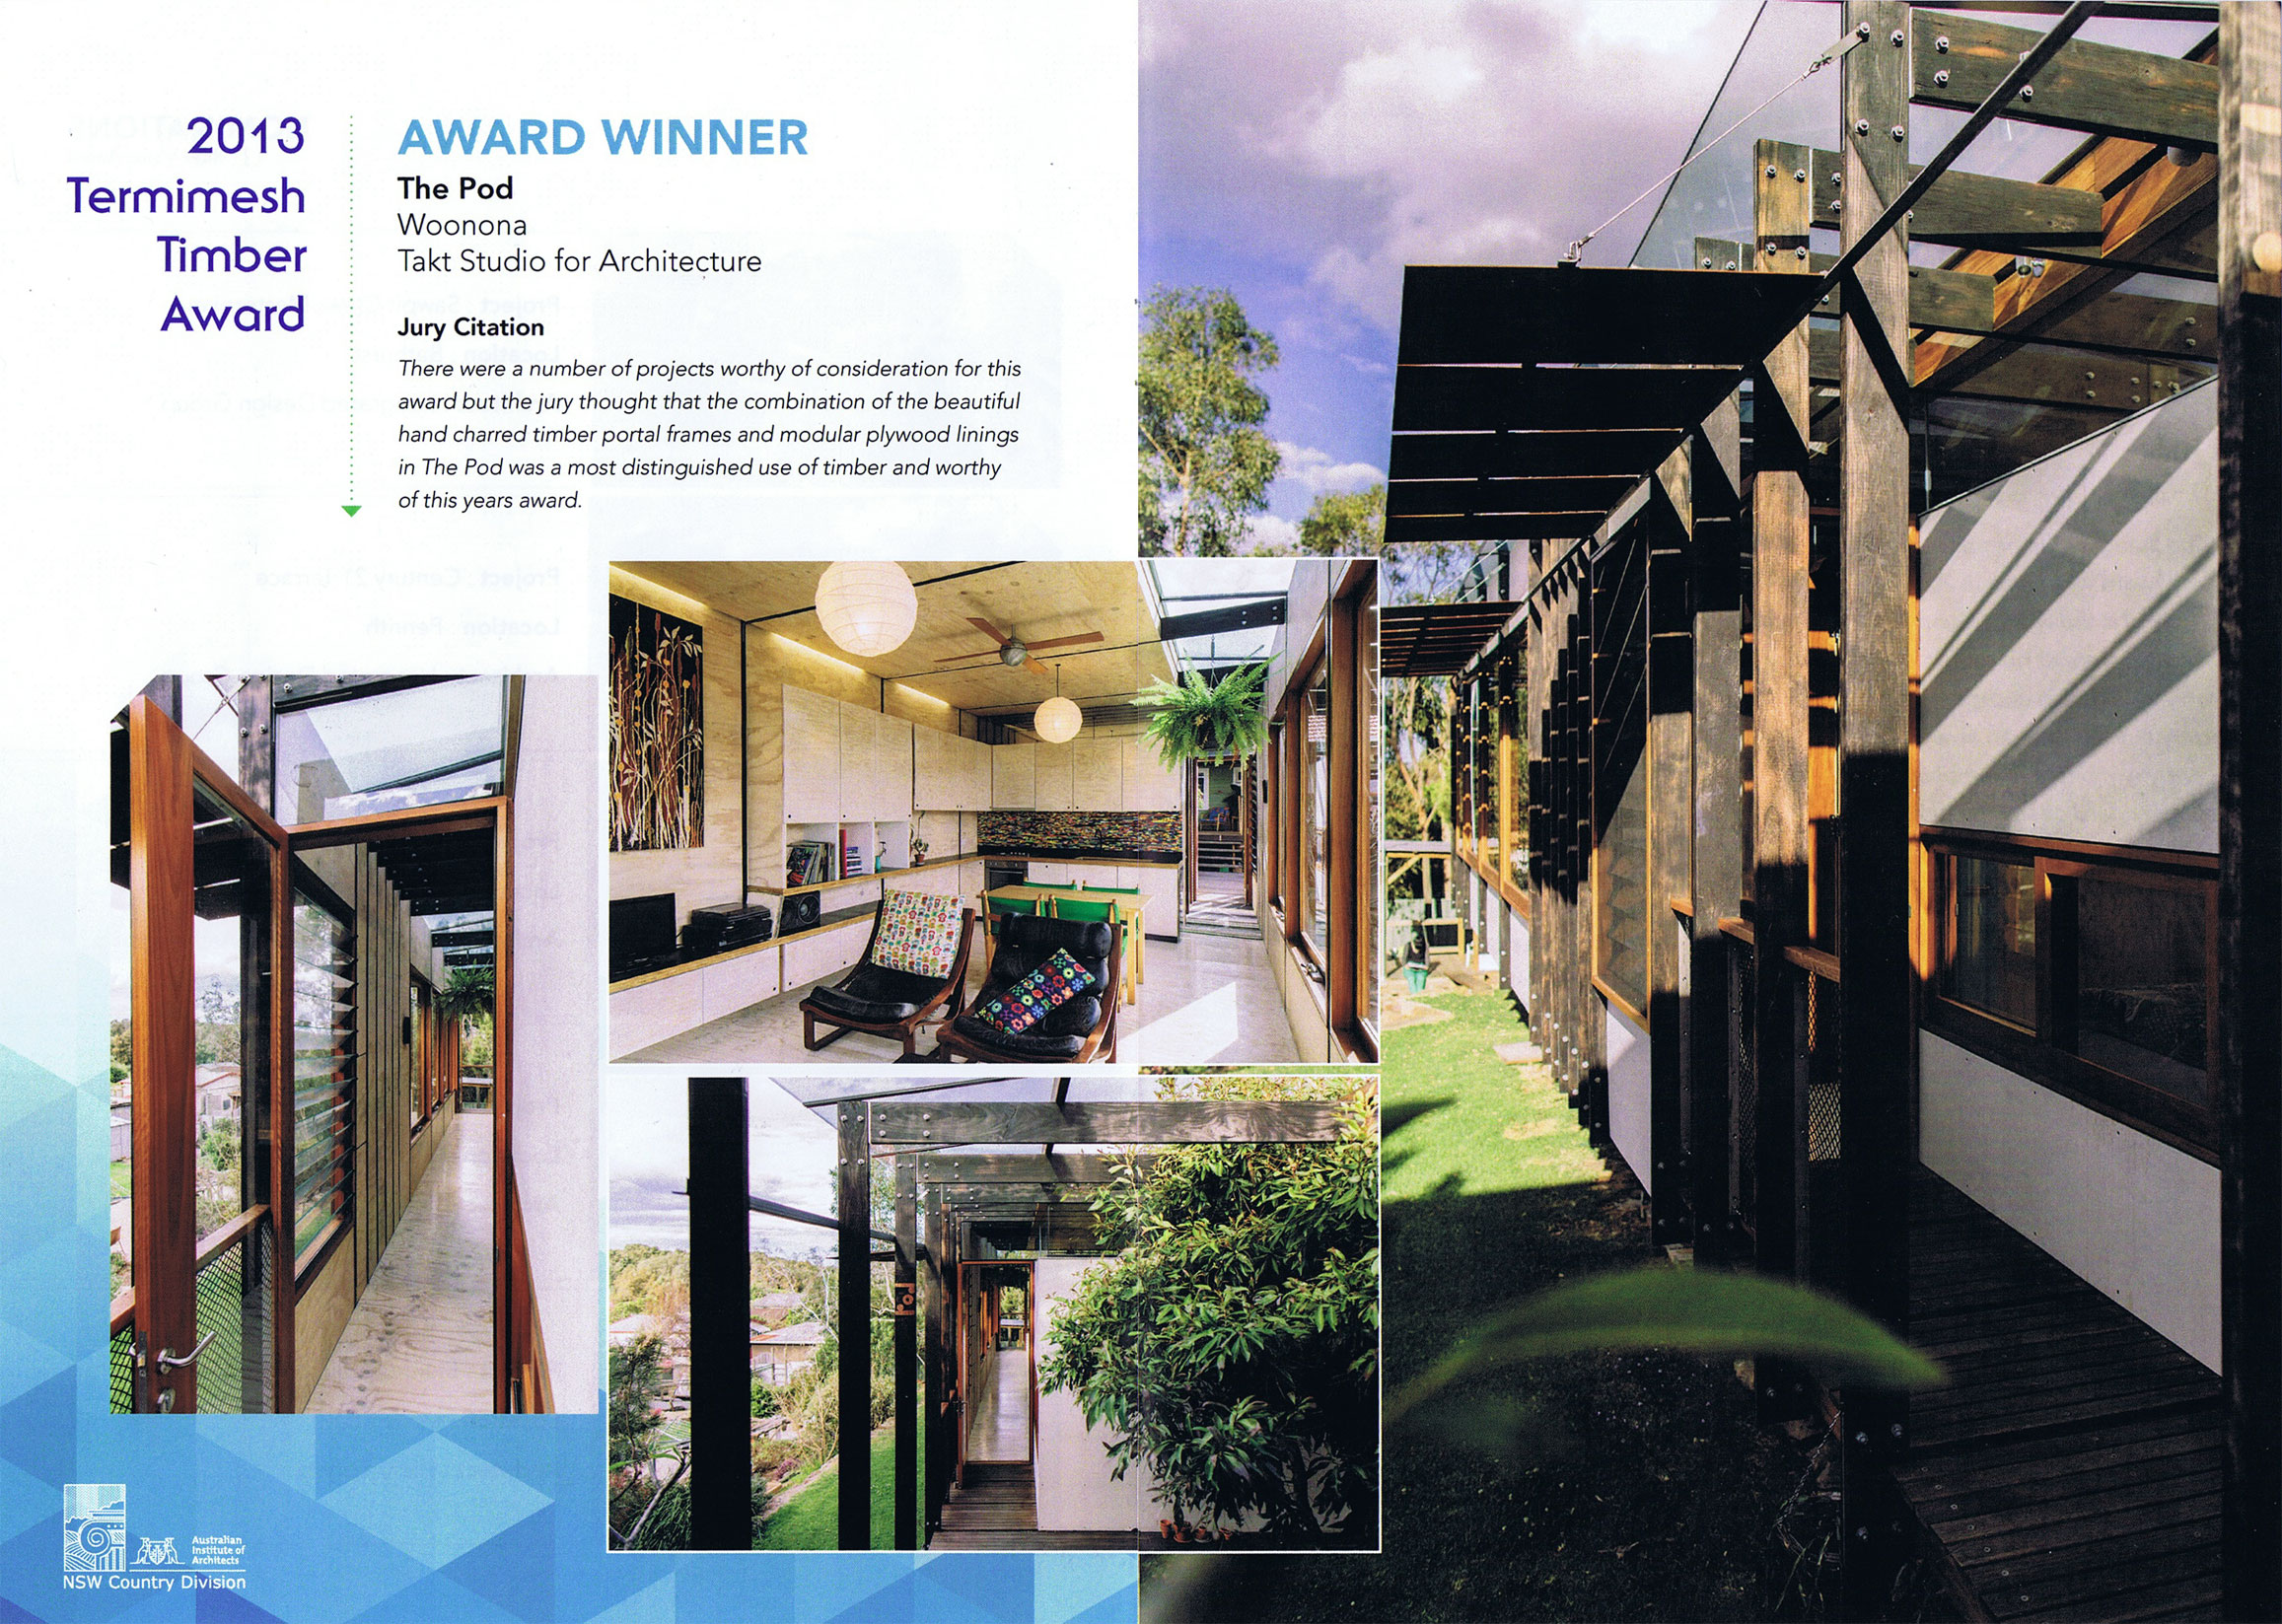 Timber Architecture Award - AIA Country Division 2013 - The Pod - Woonona